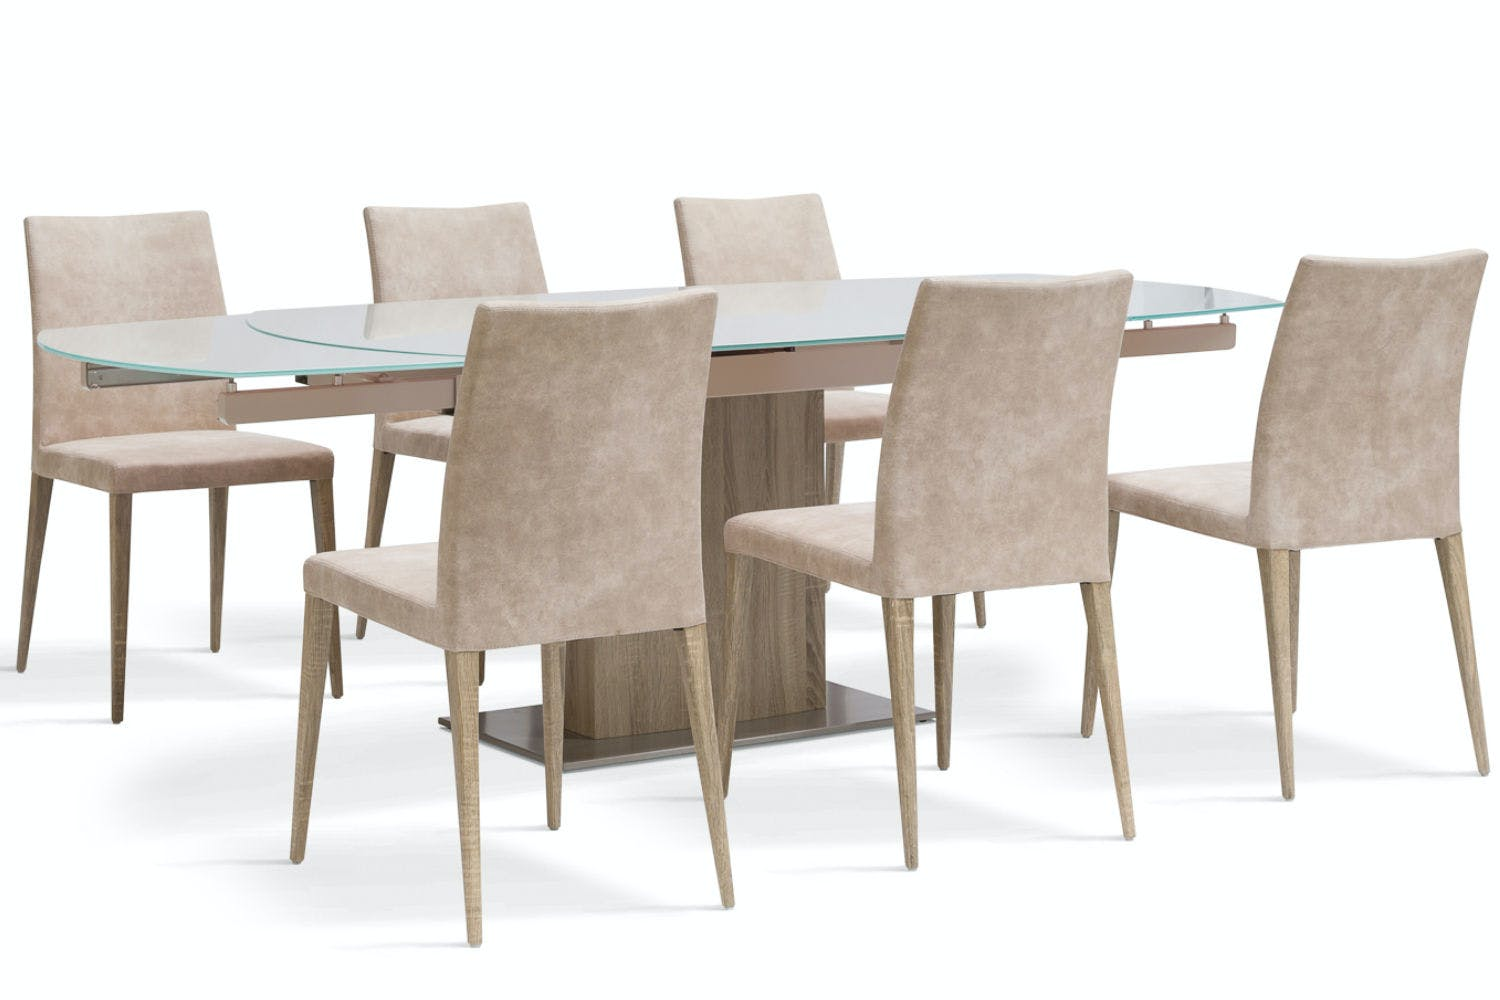 Lucci light 7 piece dining set low calvino dining chairs for 7 piece dining set with bench